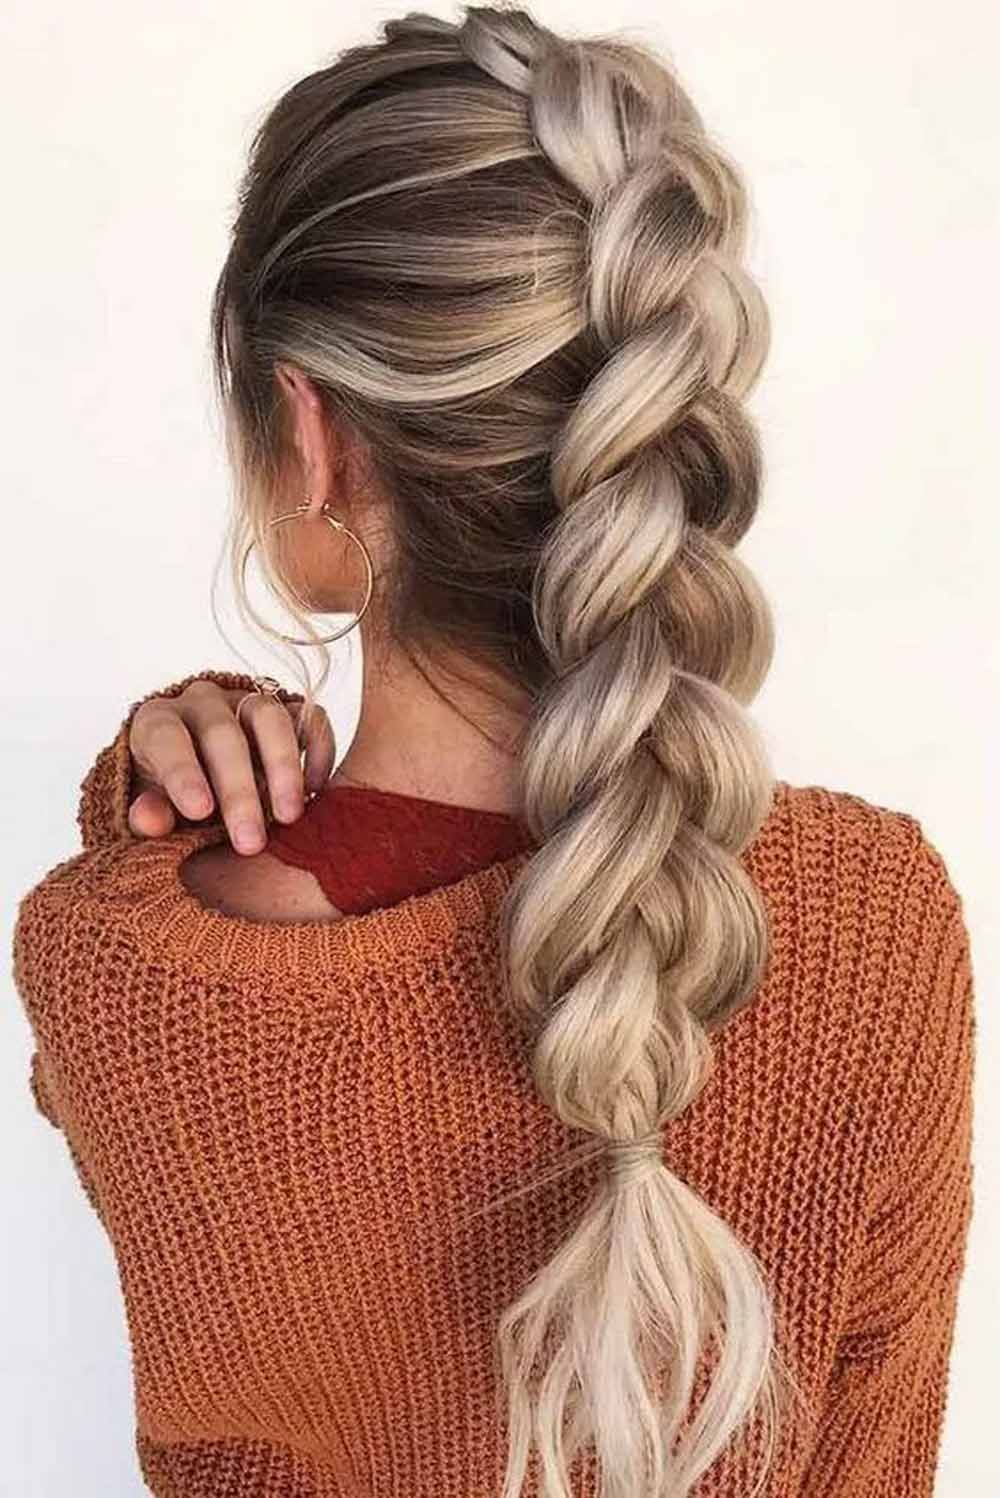 10 Easy Braid Hairstyles For Long Hair That Are Actually Cool We Swear In 2020 Hair Styles Braided Hairstyles Long Hair Styles